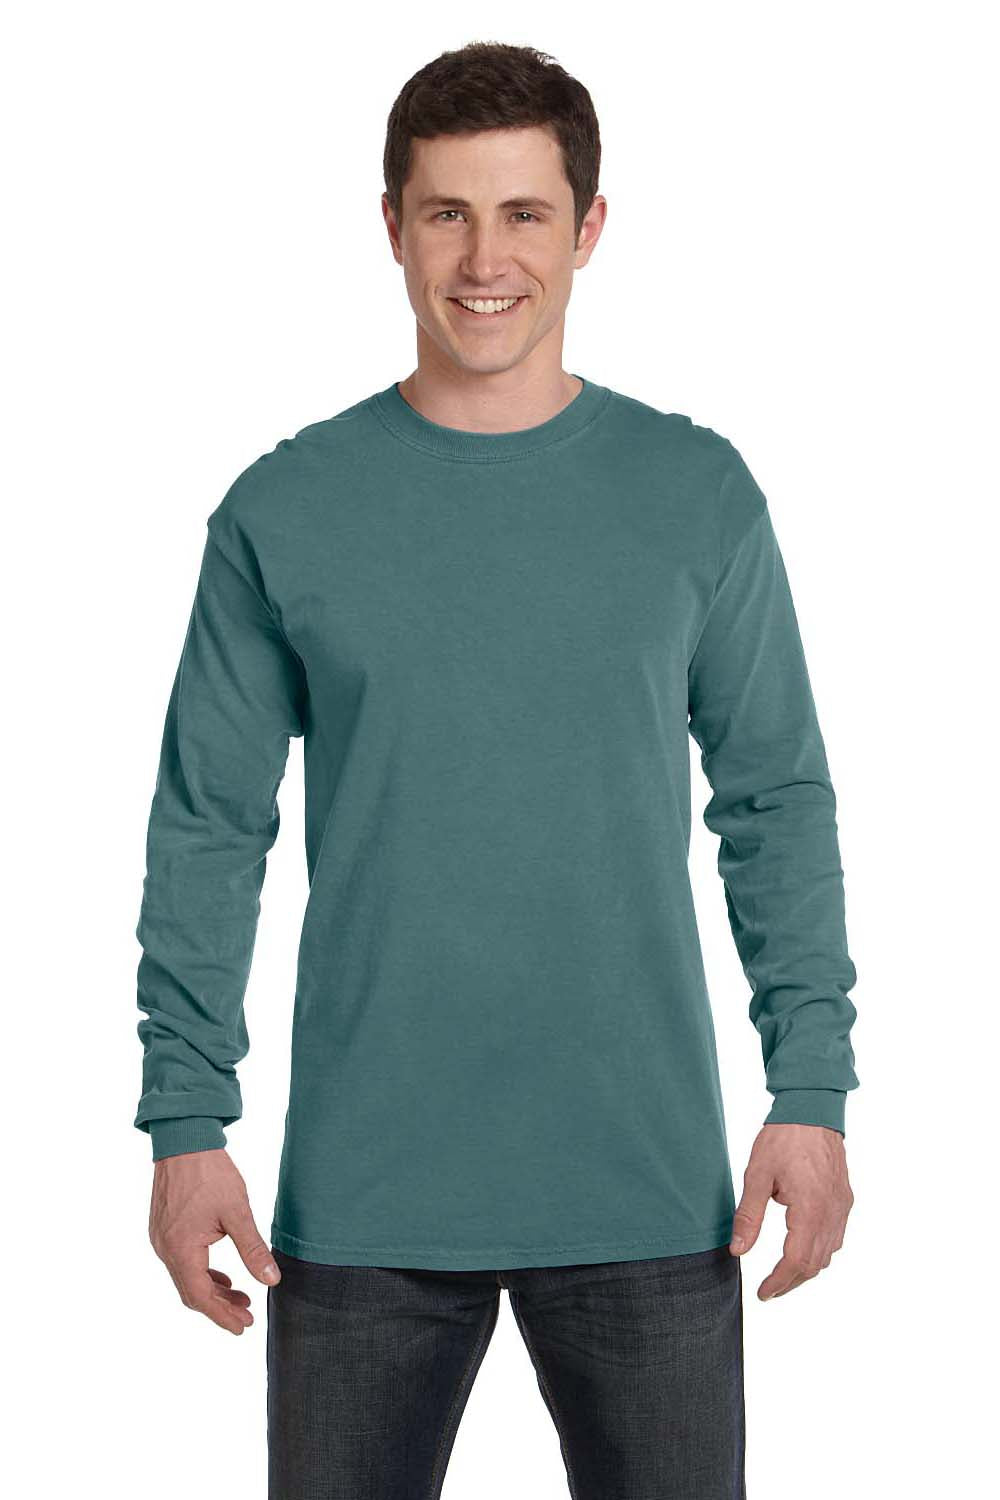 Comfort Colors C6014 Mens Long Sleeve Crewneck T-Shirt Blue Spruce Front